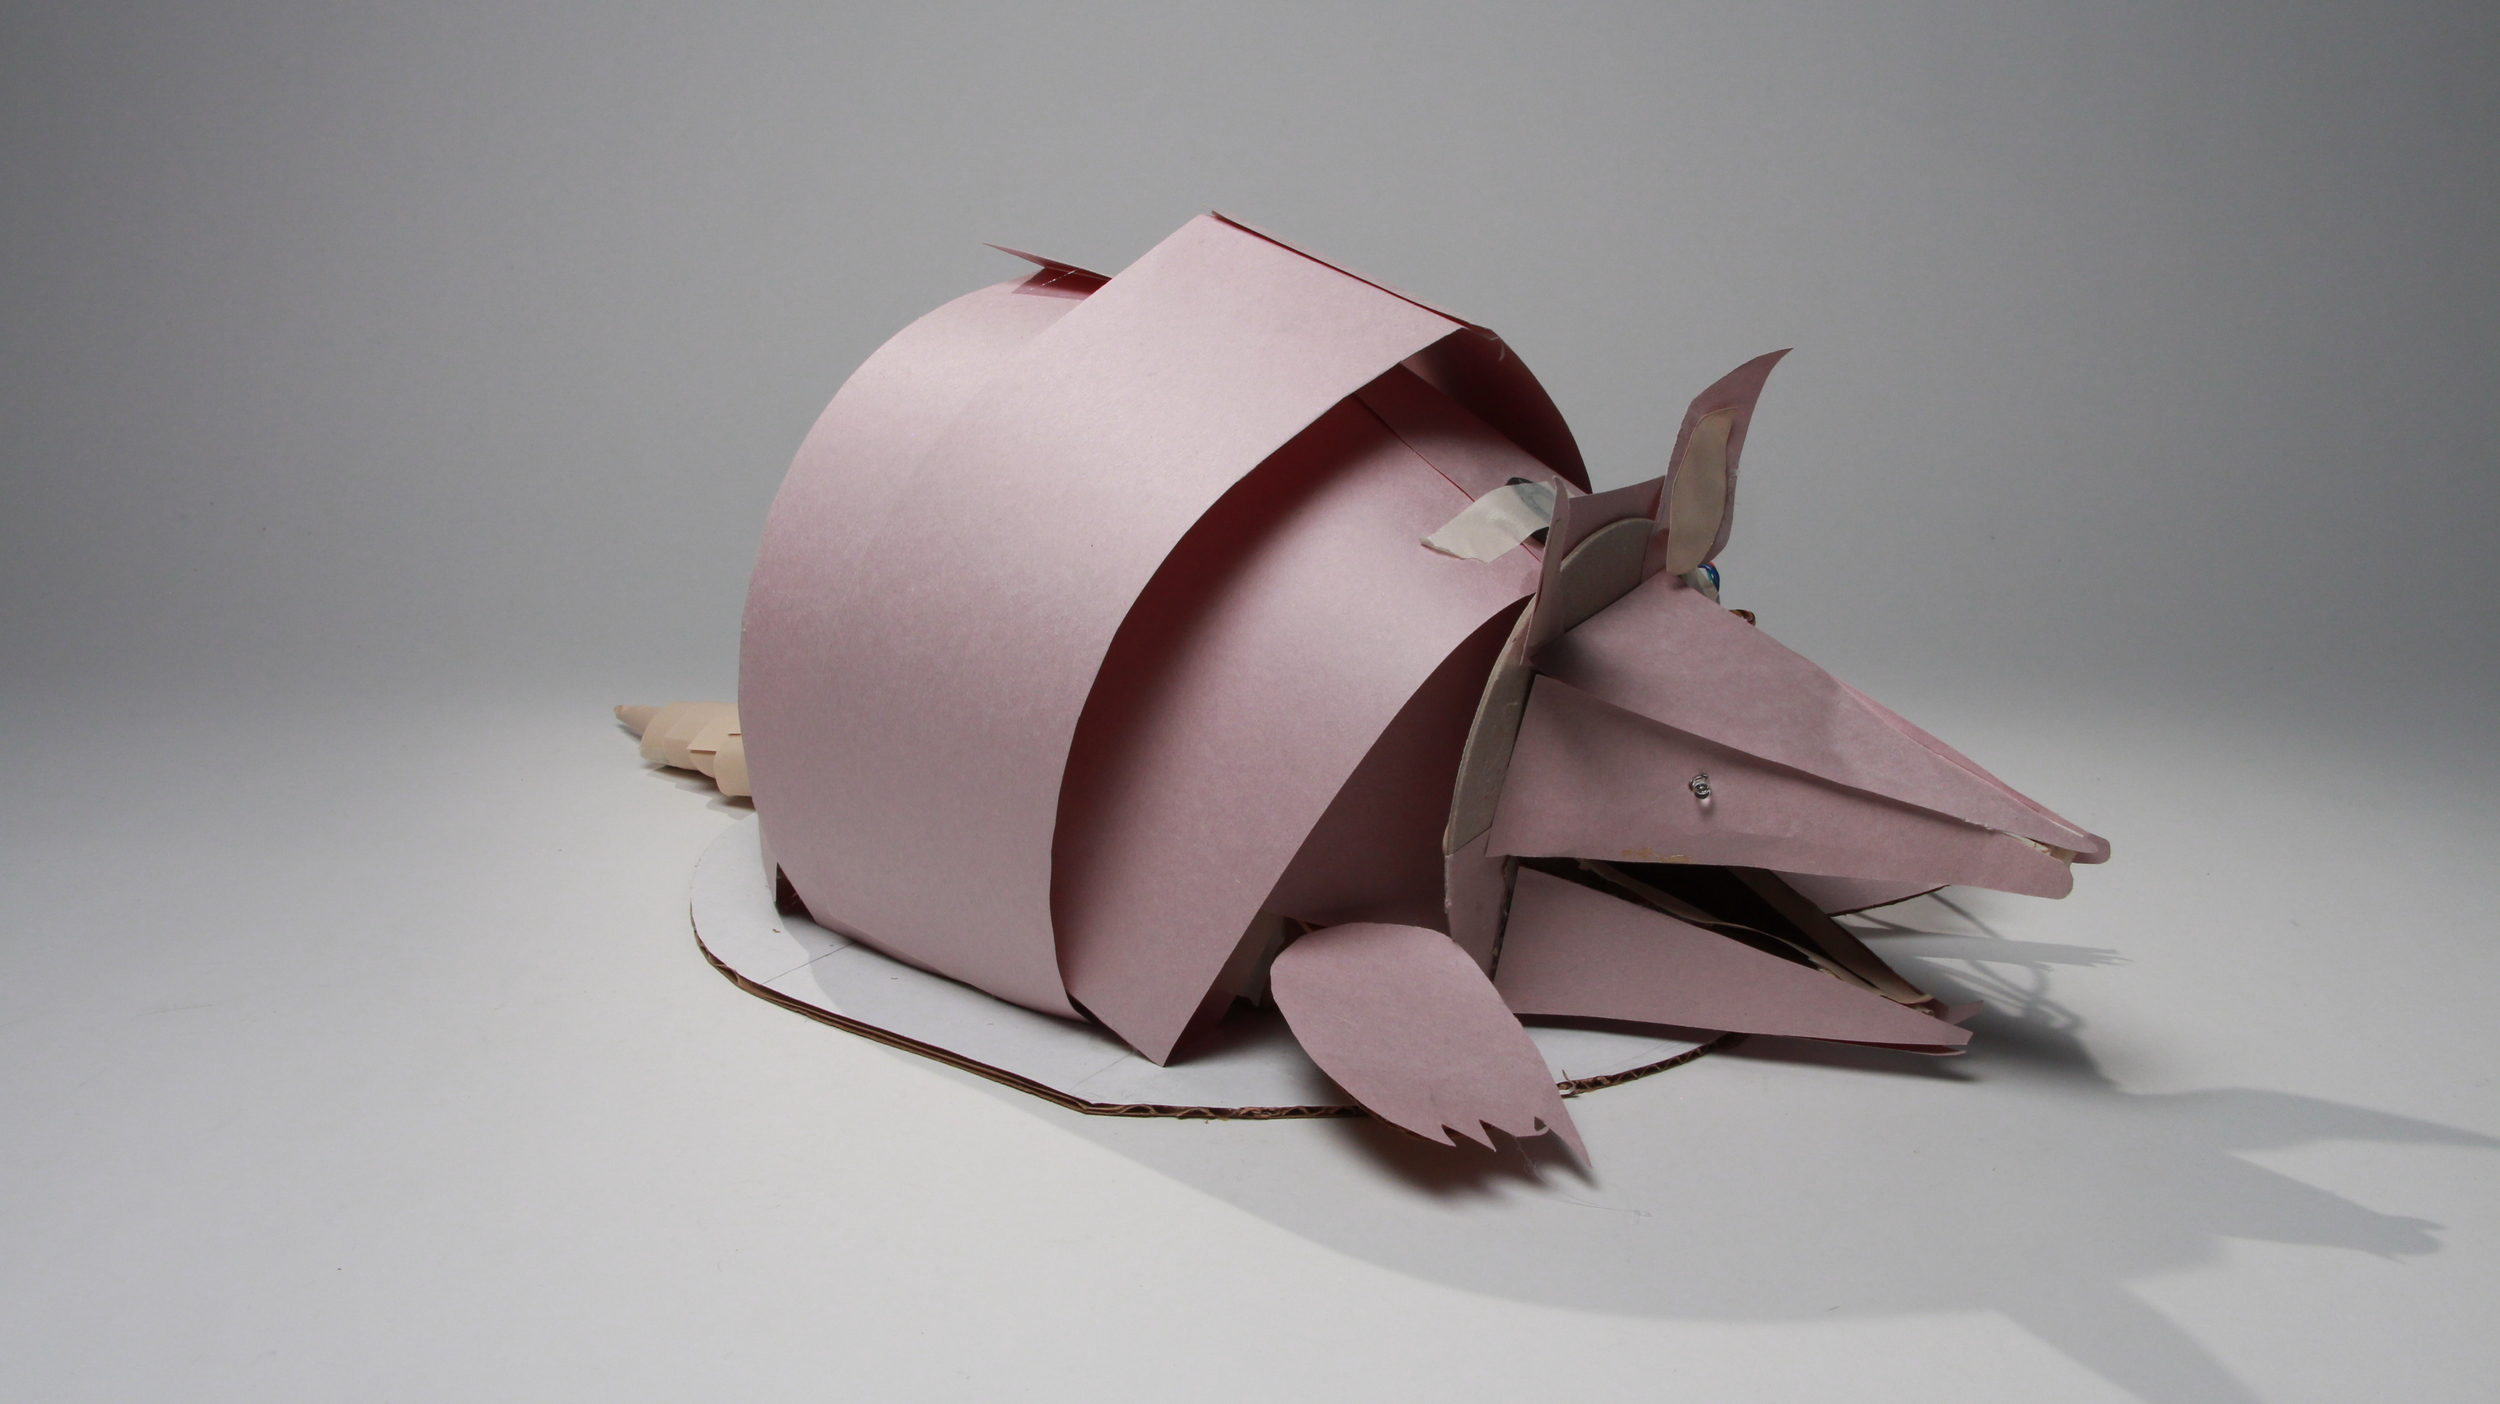 Armadillo. Designed by Brigitte & Chaya